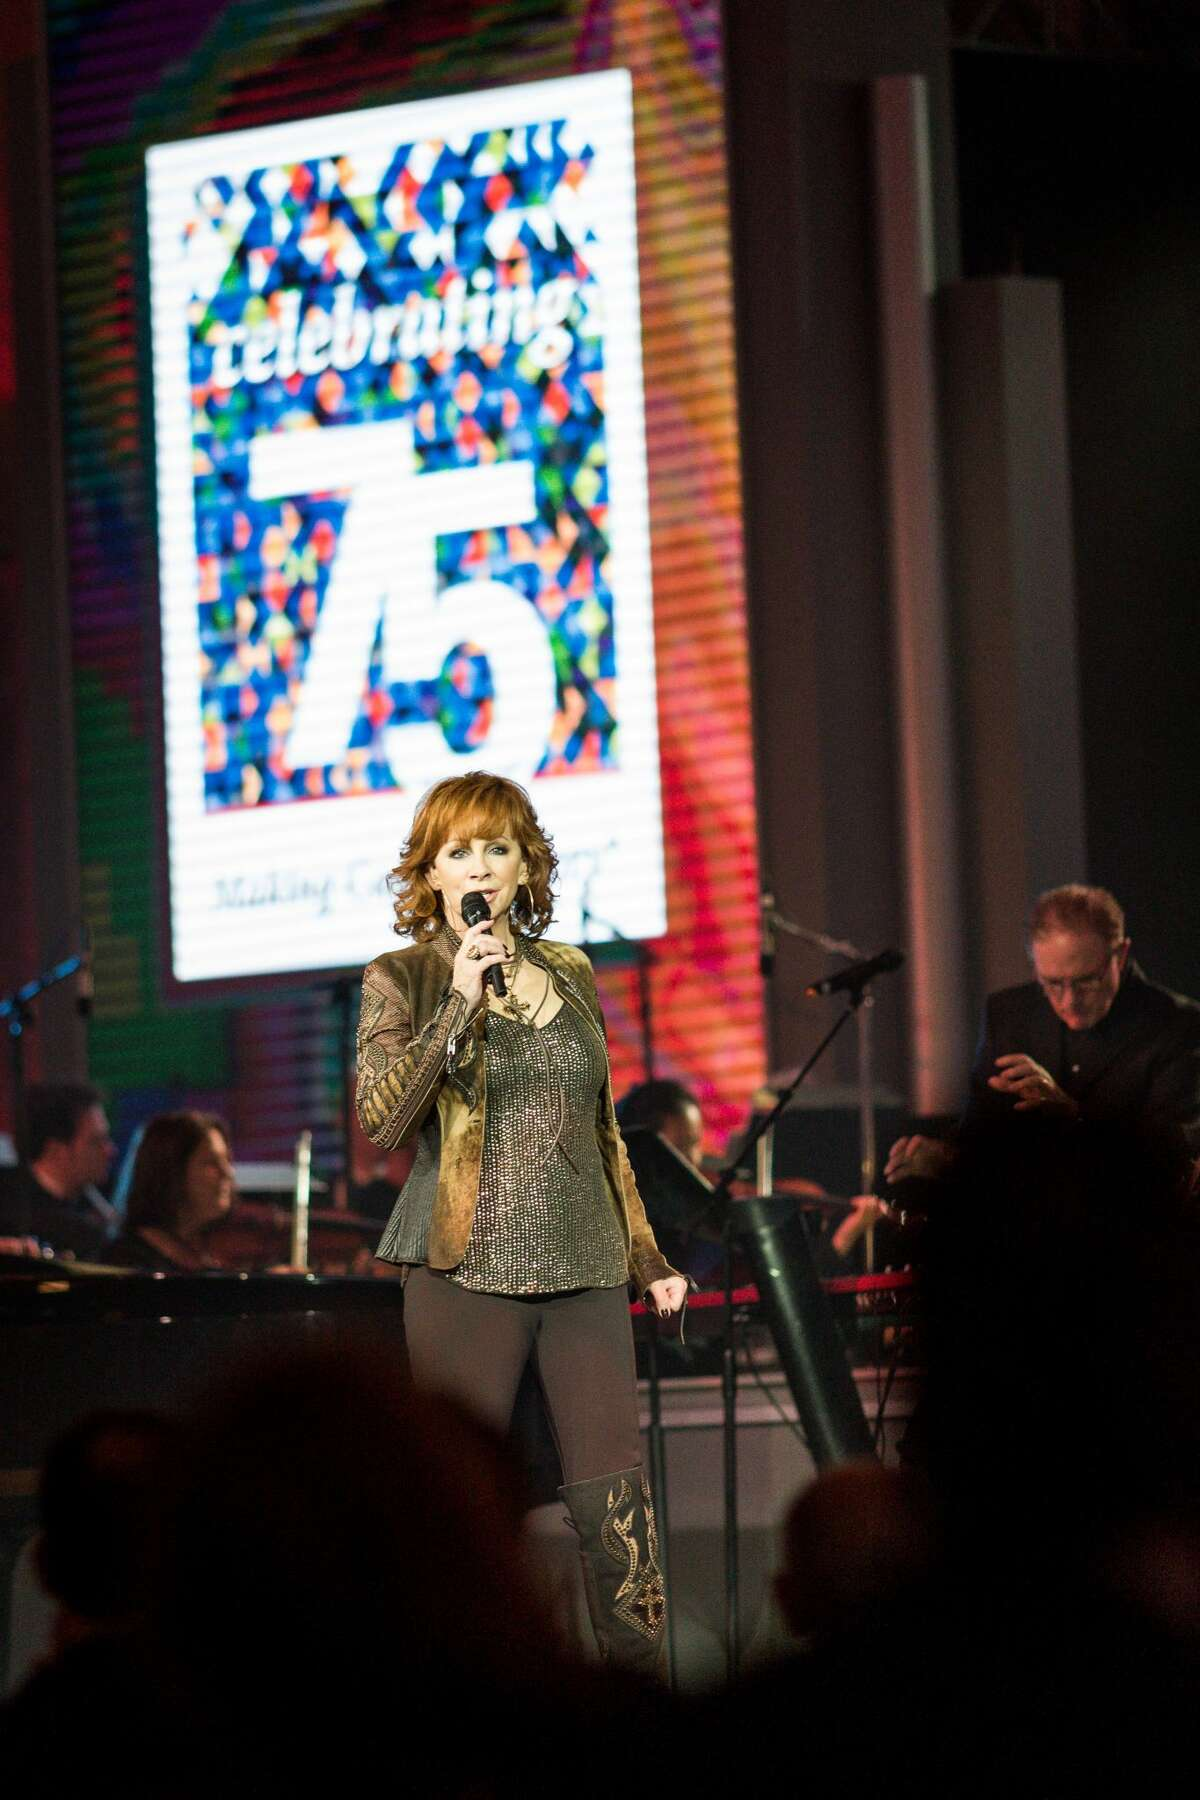 The 75th Anniversary Gala on Nov. 10, 2016, raised money for MD Anderson's cancer research programs. Reba McEntire performs at MD Anderson's 75th anniversary gala.